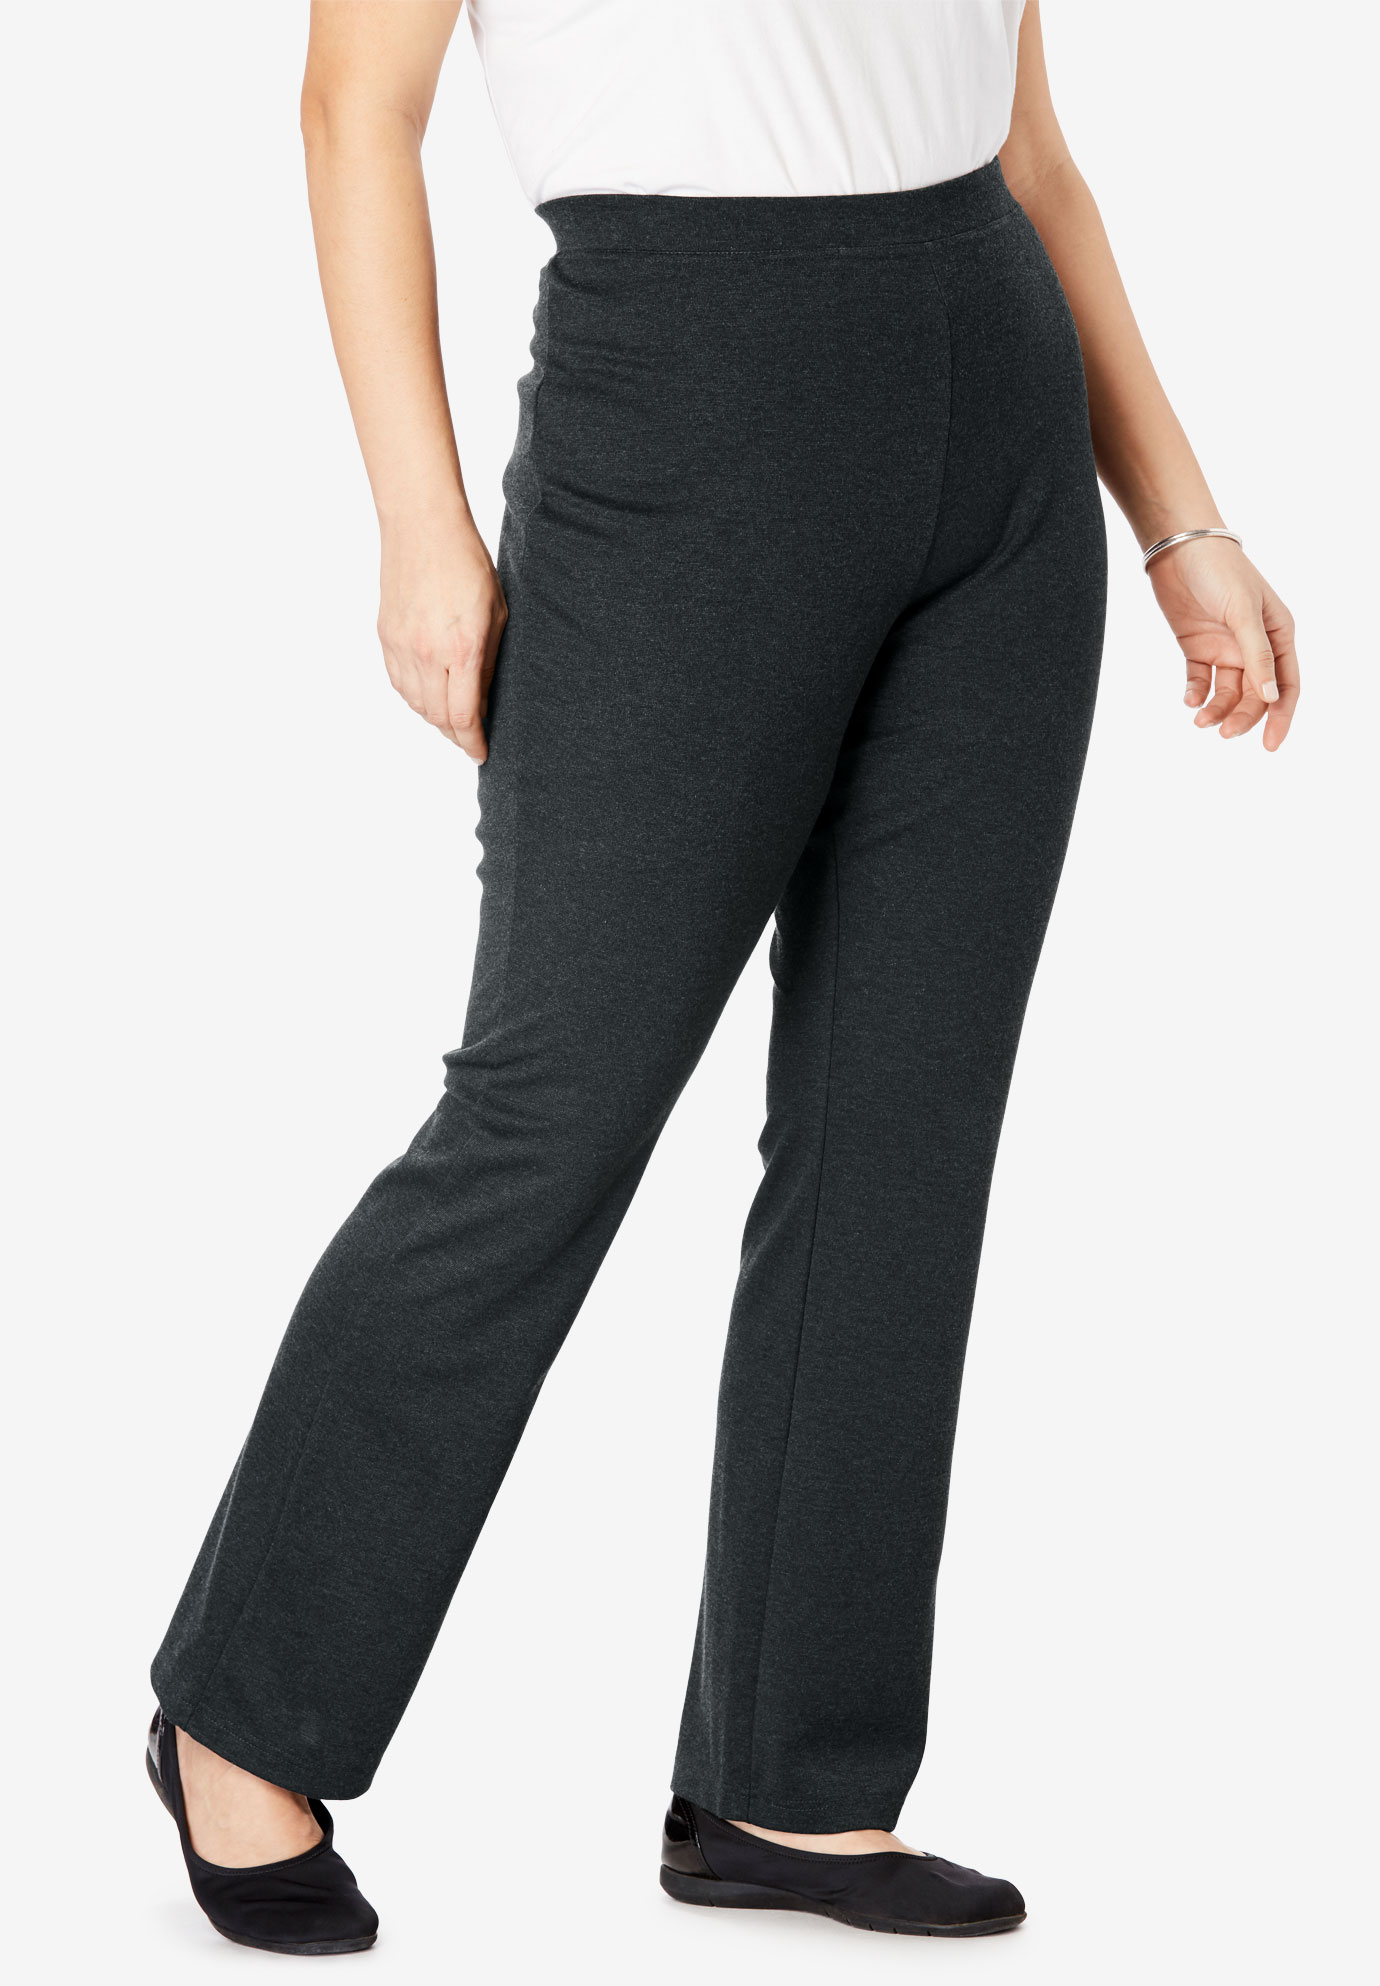 Bootcut Ponte Knit Stretch Pants, HEATHER CHARCOAL, hi-res